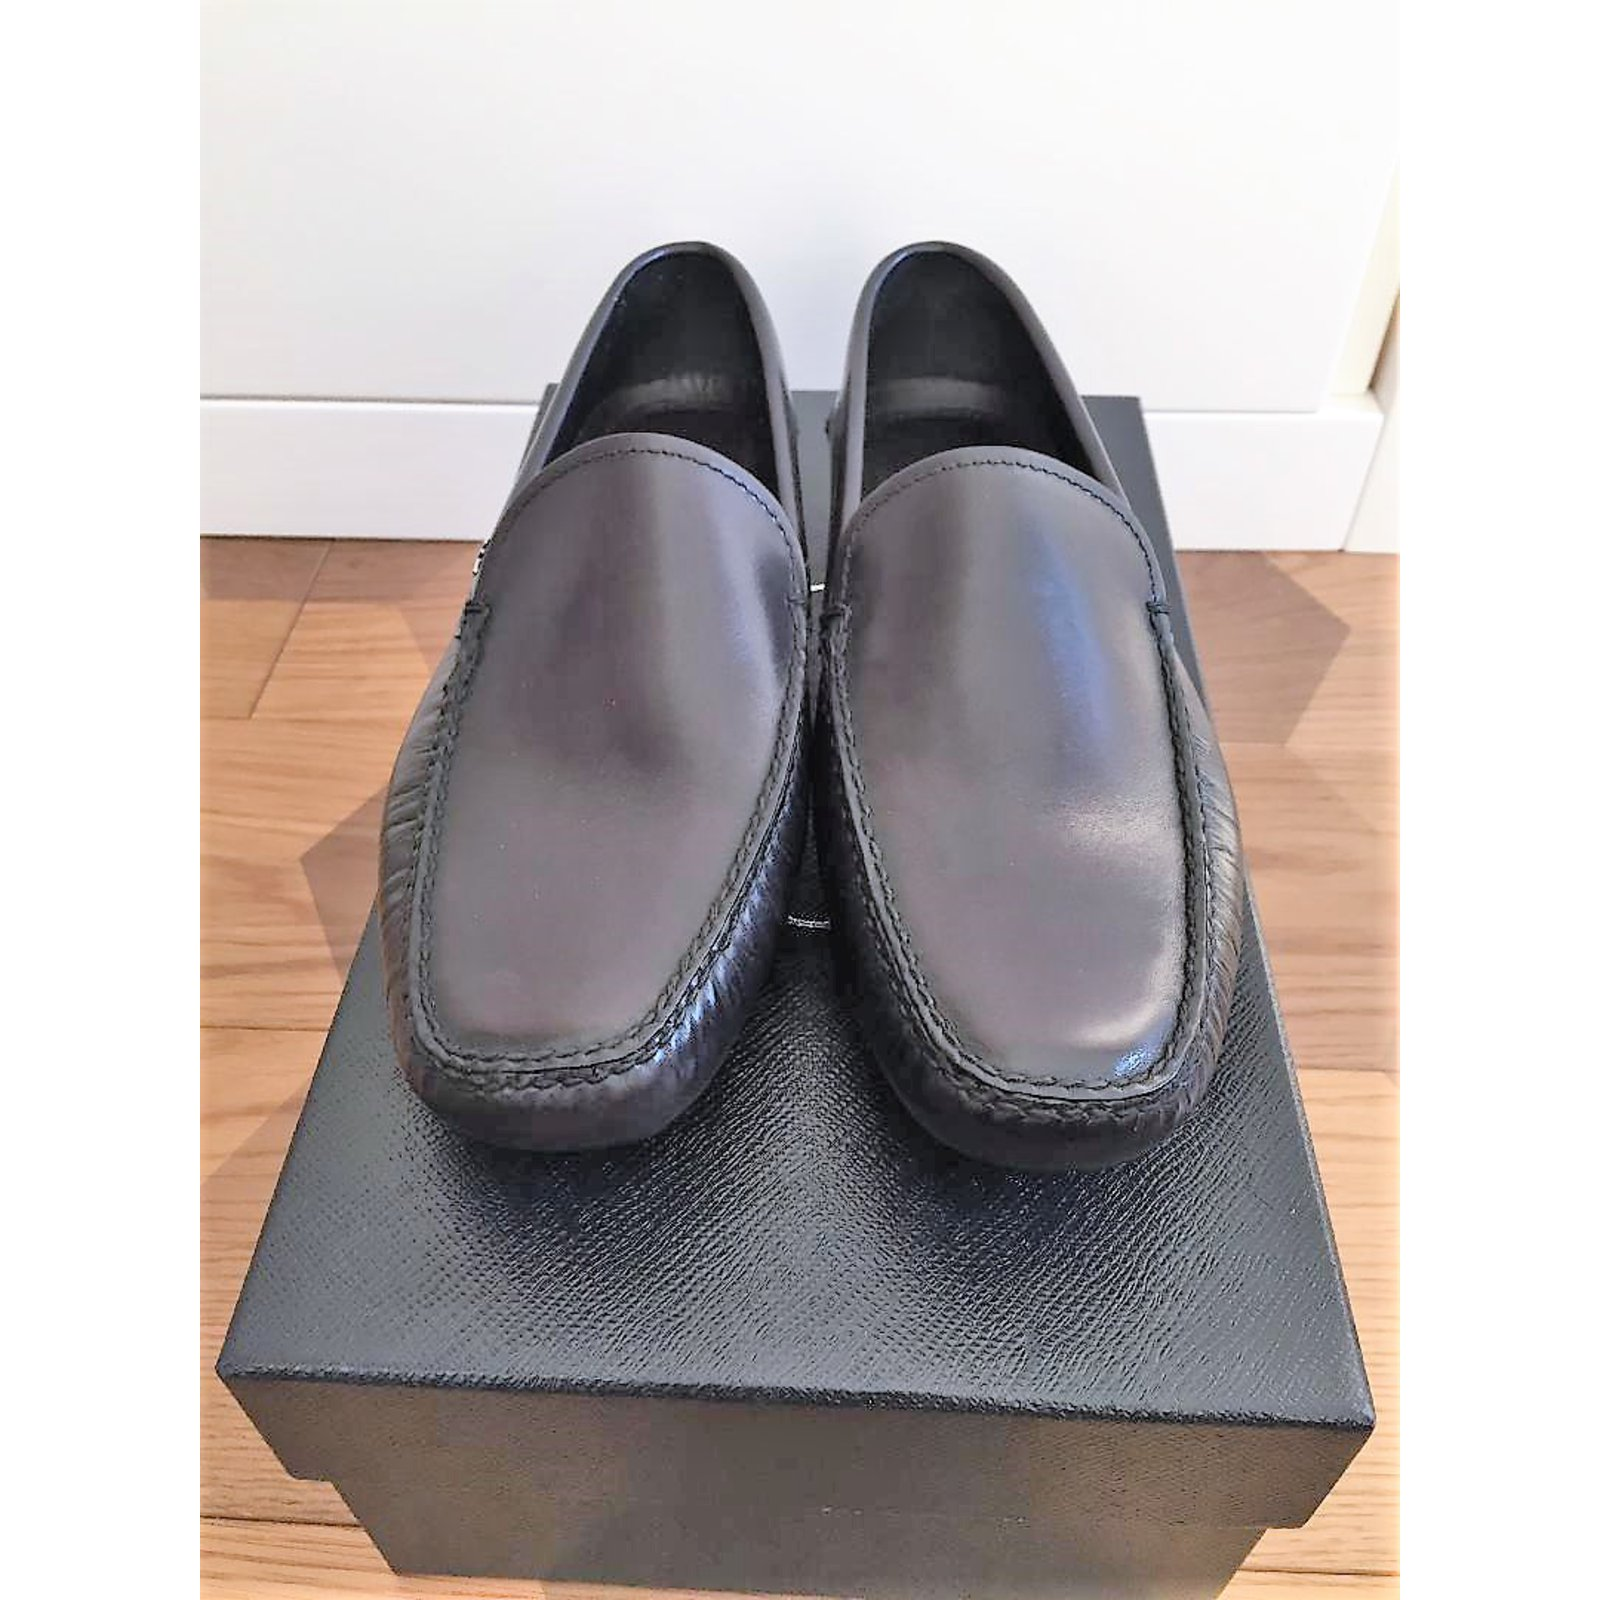 abc396fd66 Prada Men's low loafer Loafers Slip ons Leather Black ref.60323 ...